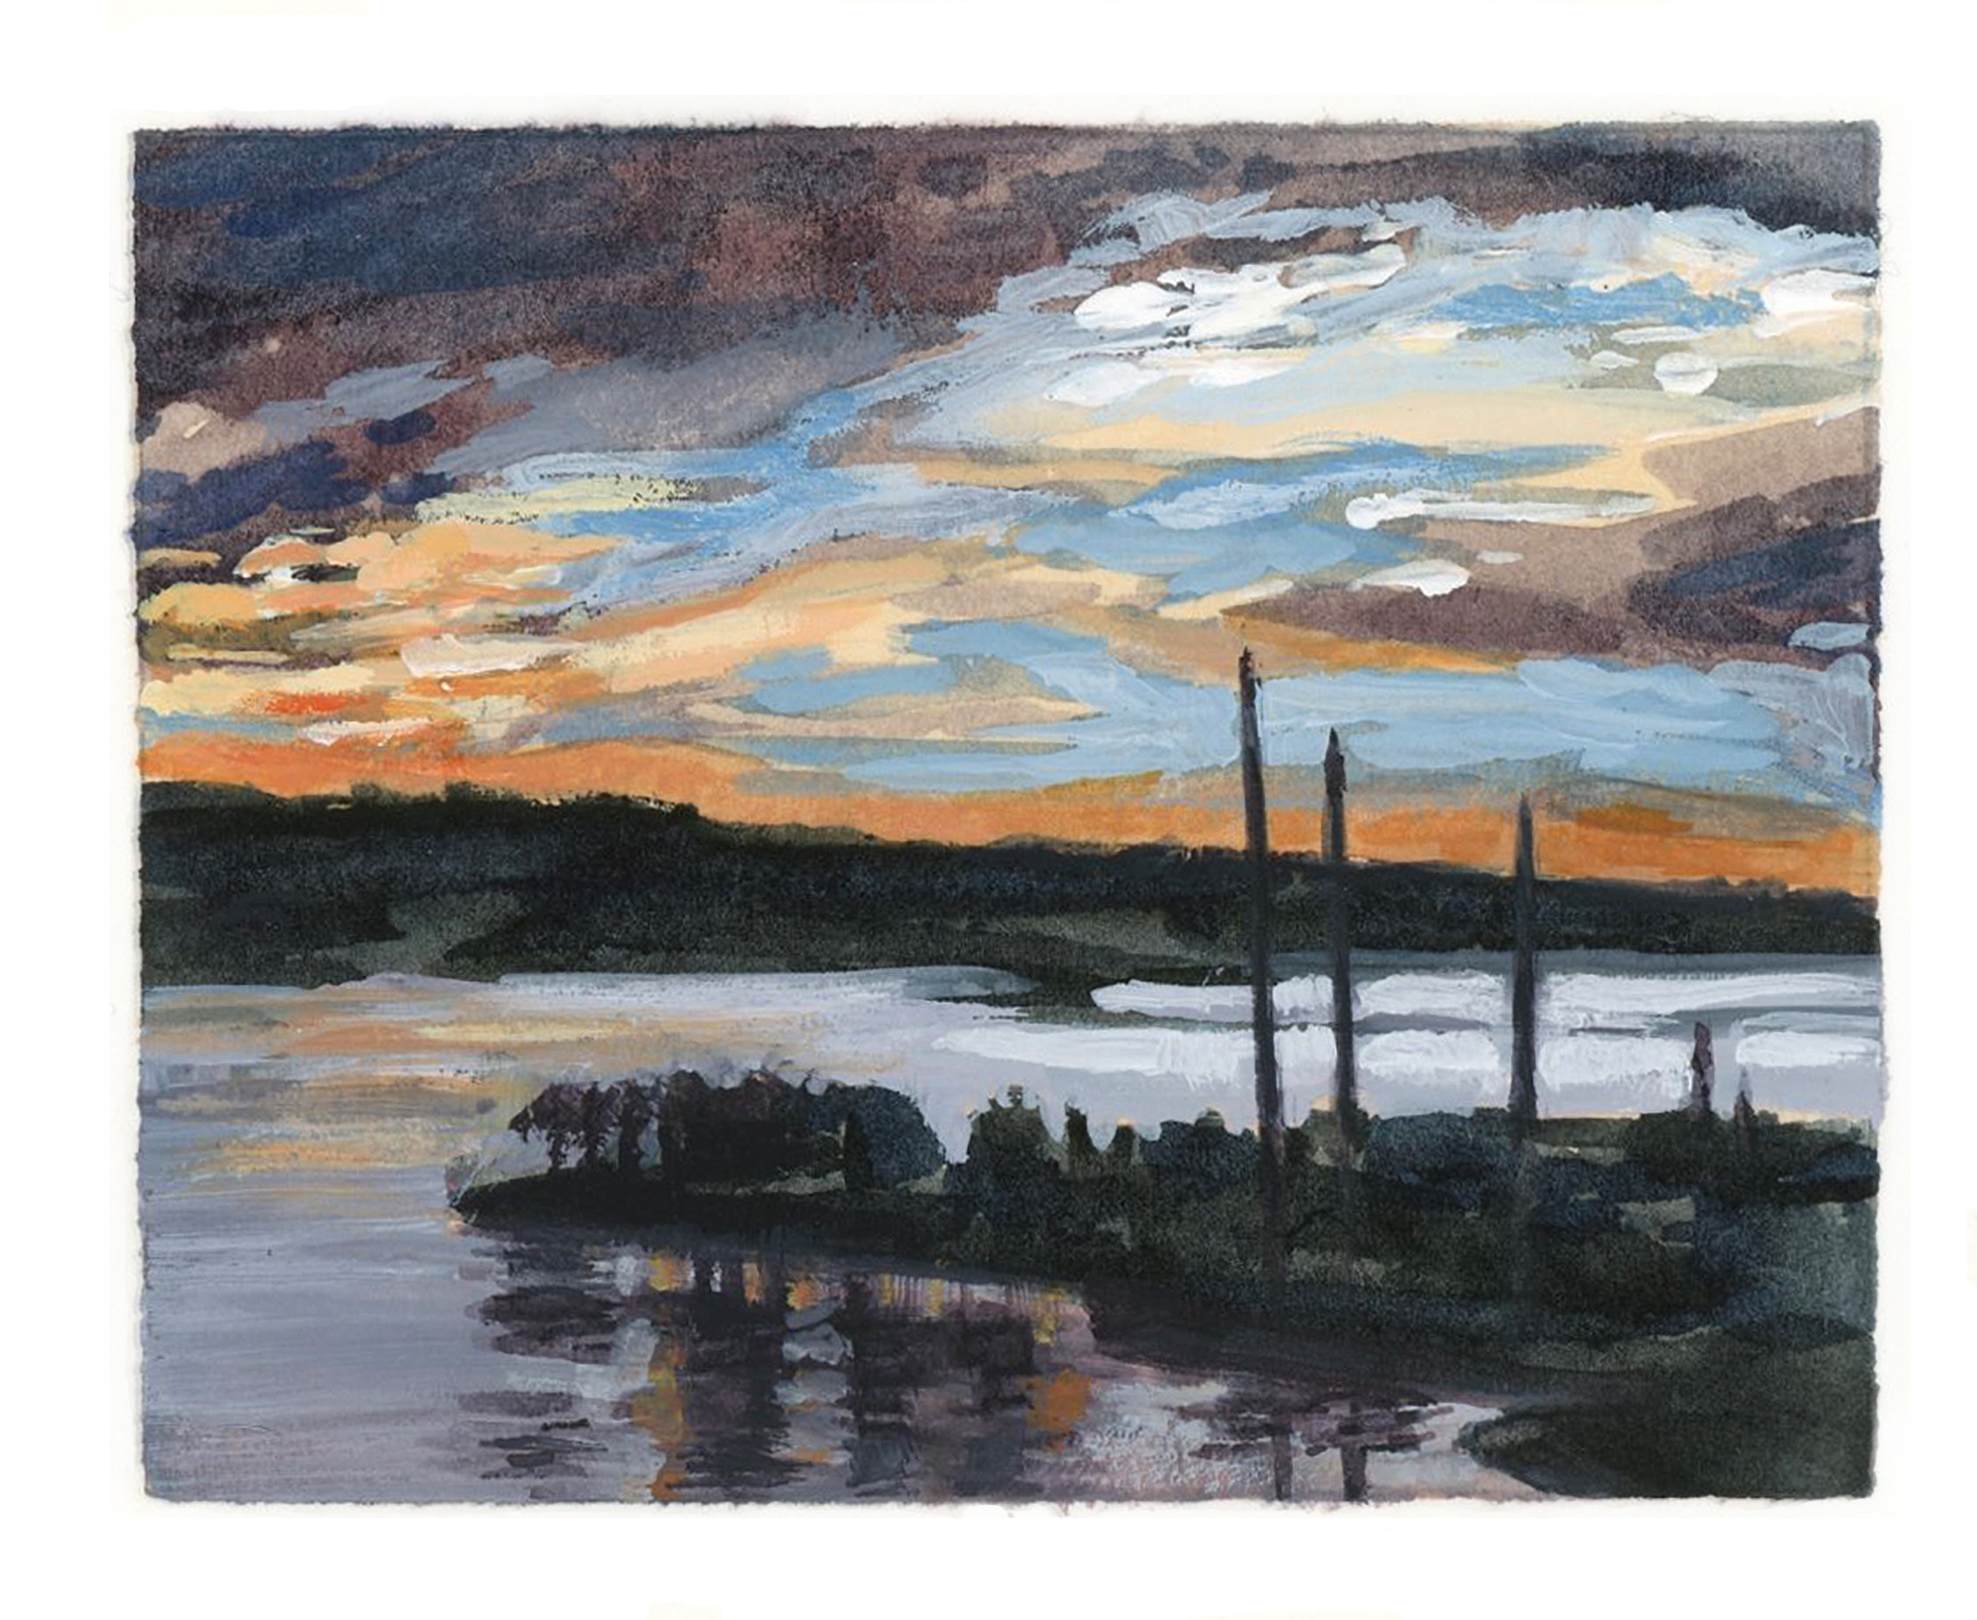 My Small Paintings miniature watercolour tiny art of sunset over yachts in harbour San Diego Bay